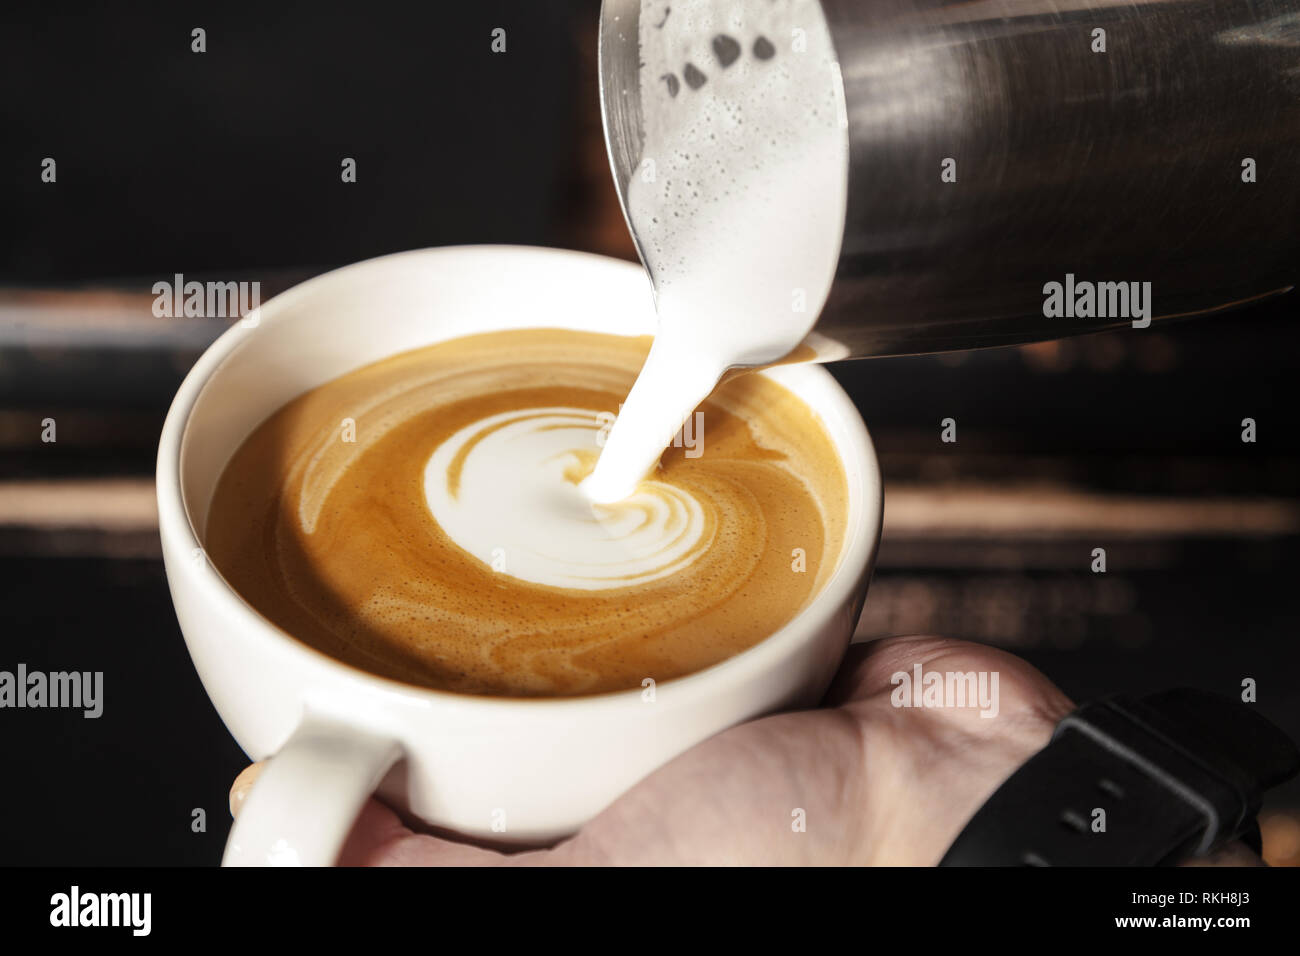 A Professional Barista Holds A Cup Of Coffee Making A Beautiful